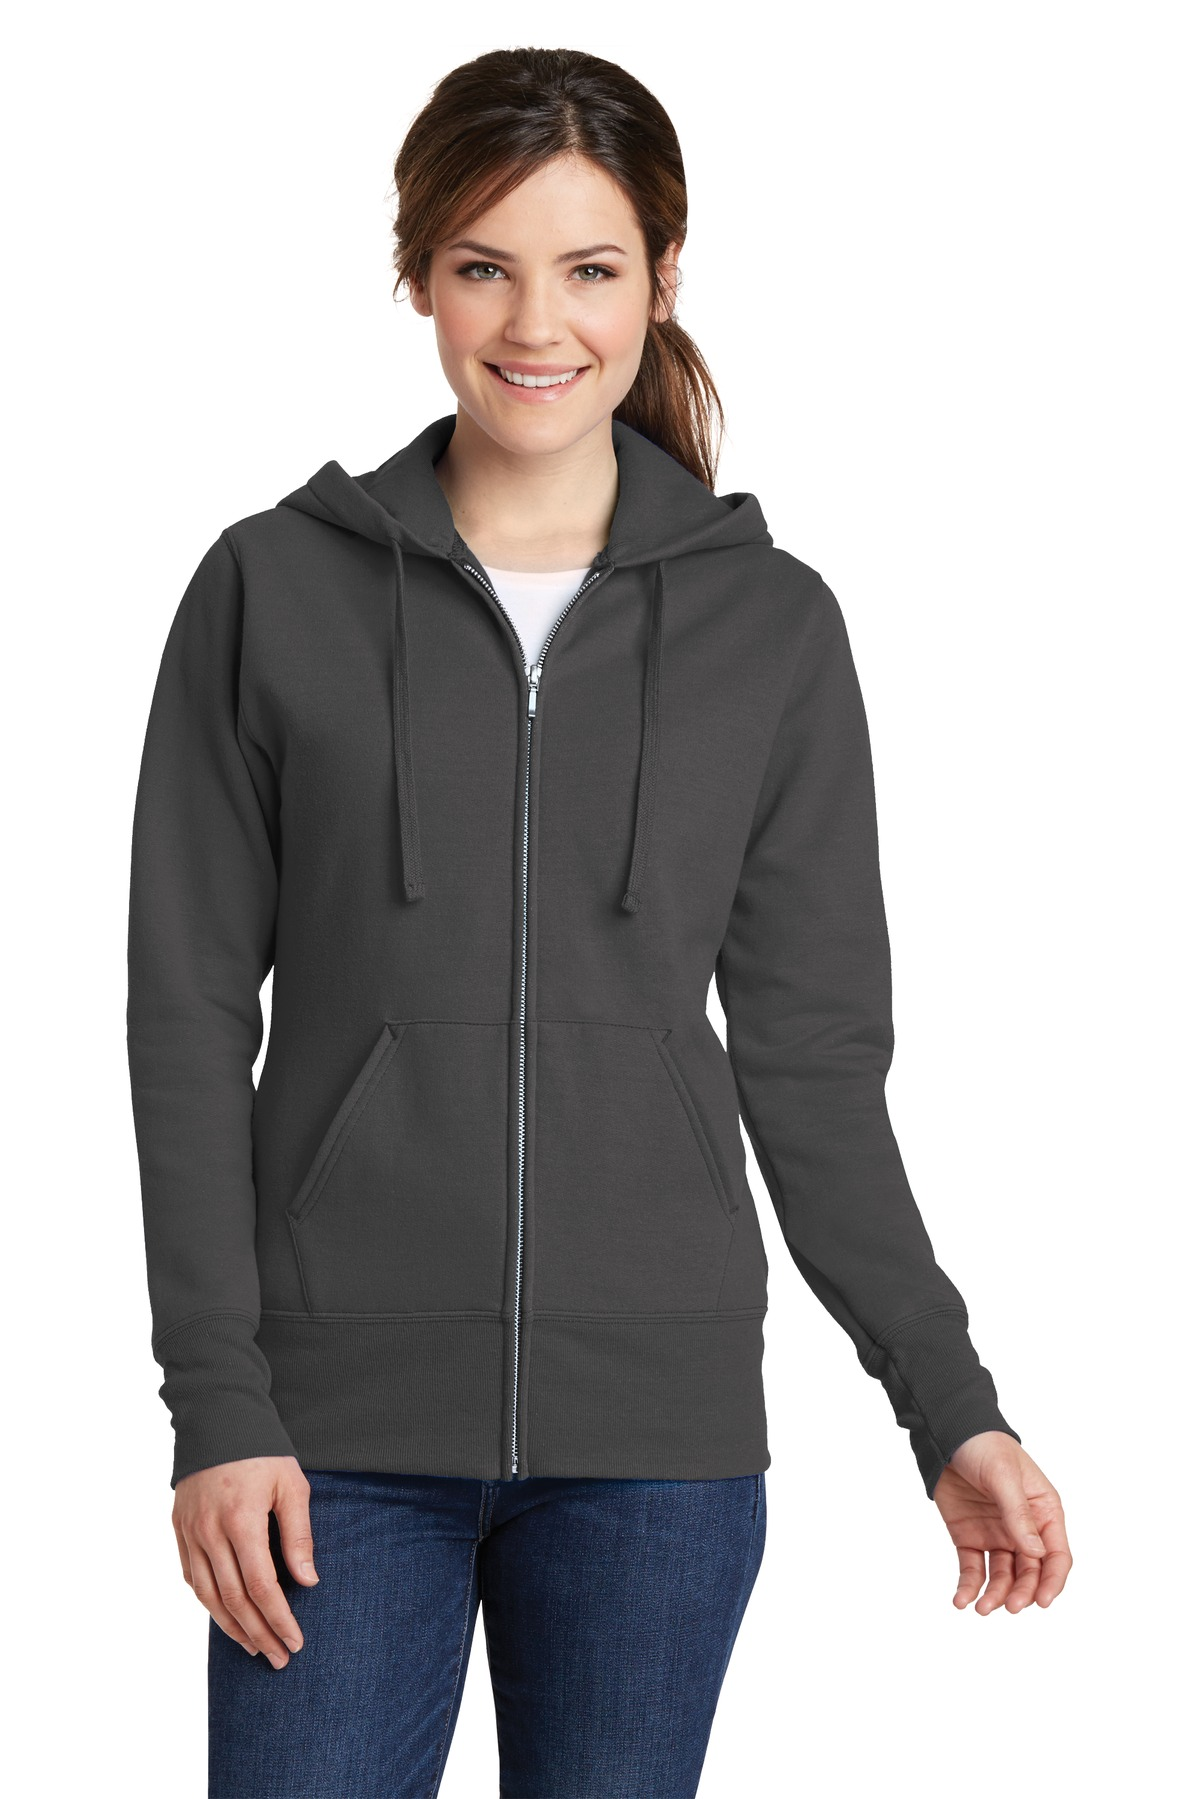 Port & Company ®  Ladies Core Fleece Full-Zip Hooded Sweatshirt. LPC78ZH - Charcoal